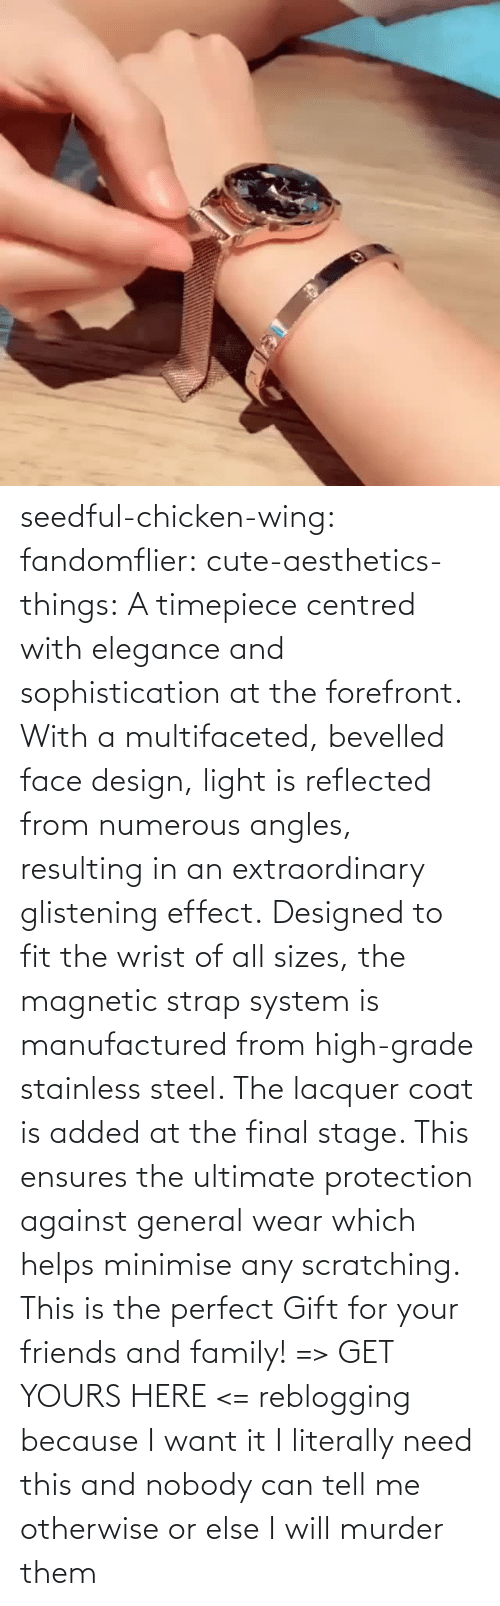 www: seedful-chicken-wing: fandomflier:  cute-aesthetics-things:   A timepiece centred with elegance and sophistication at the forefront. With a multifaceted, bevelled face design, light is reflected from numerous angles, resulting in an extraordinary glistening effect. Designed to fit the wrist of all sizes, the magnetic strap system is manufactured from high-grade stainless steel. The lacquer coat is added at the final stage. This ensures the ultimate protection against general wear which helps minimise any scratching. This is the perfect Gift for your friends and family! => GET YOURS HERE <=   reblogging because I want it  I literally need this and nobody can tell me otherwise or else I will murder them